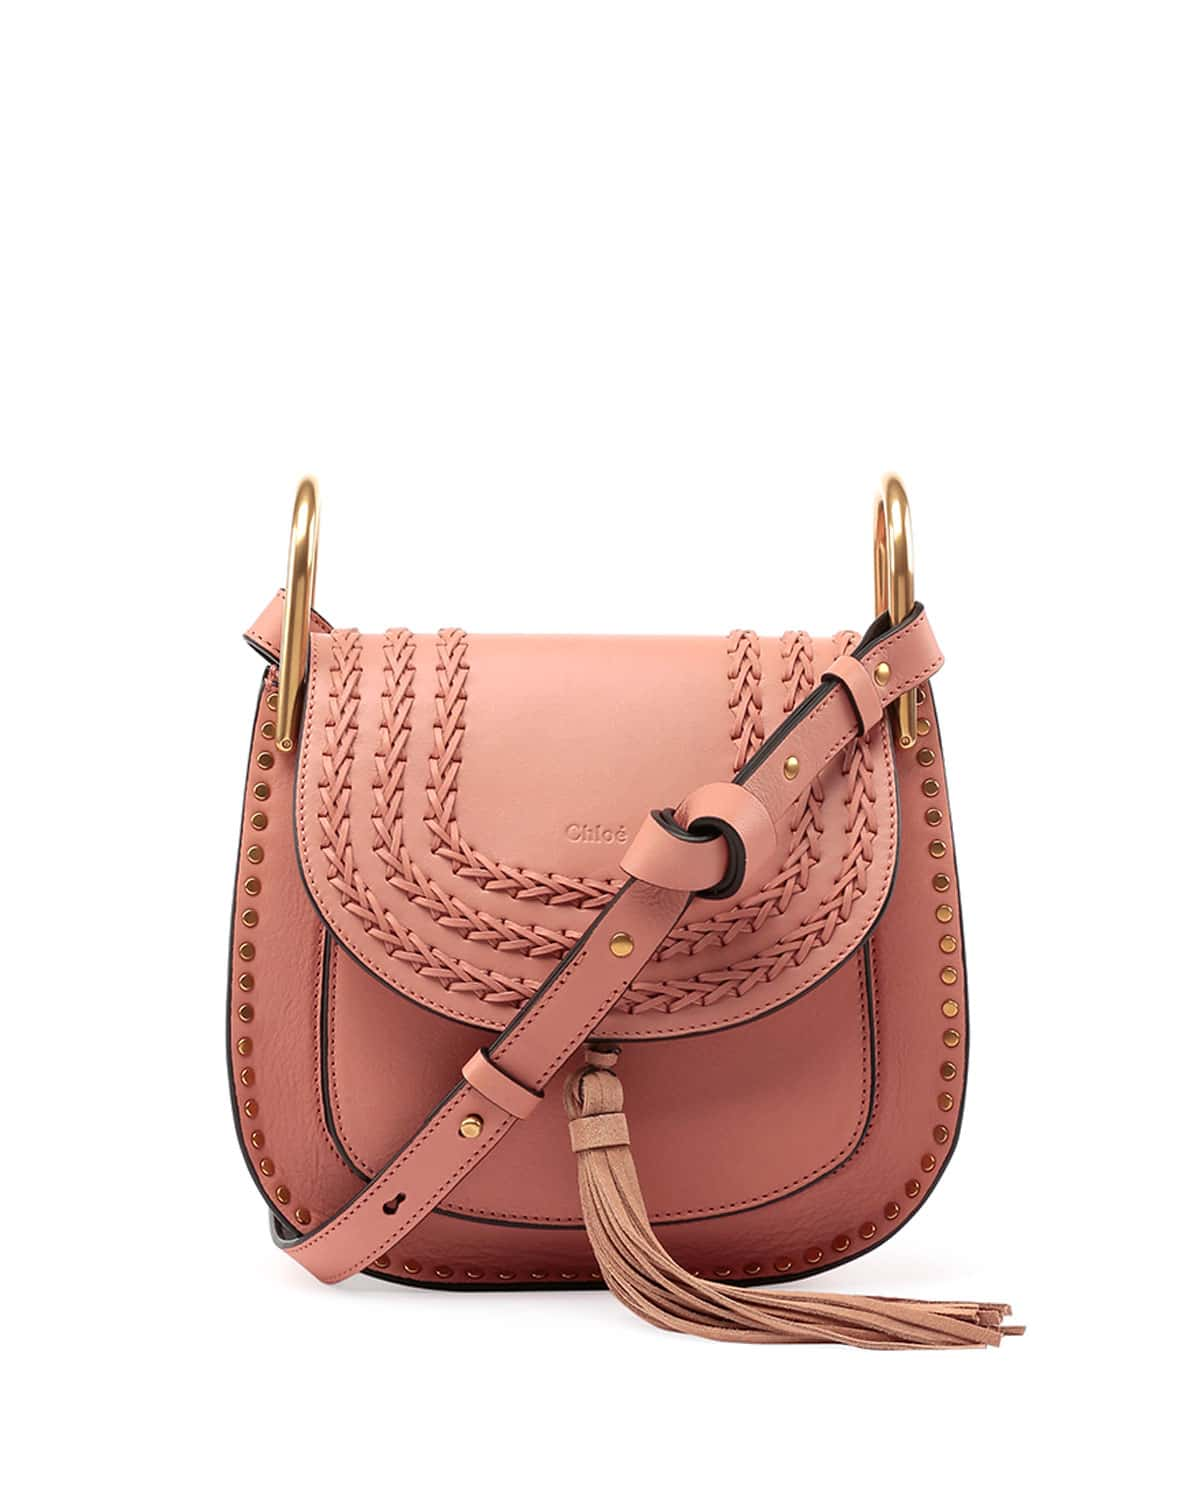 chloe it bag - chleo bag, replica chloe purse